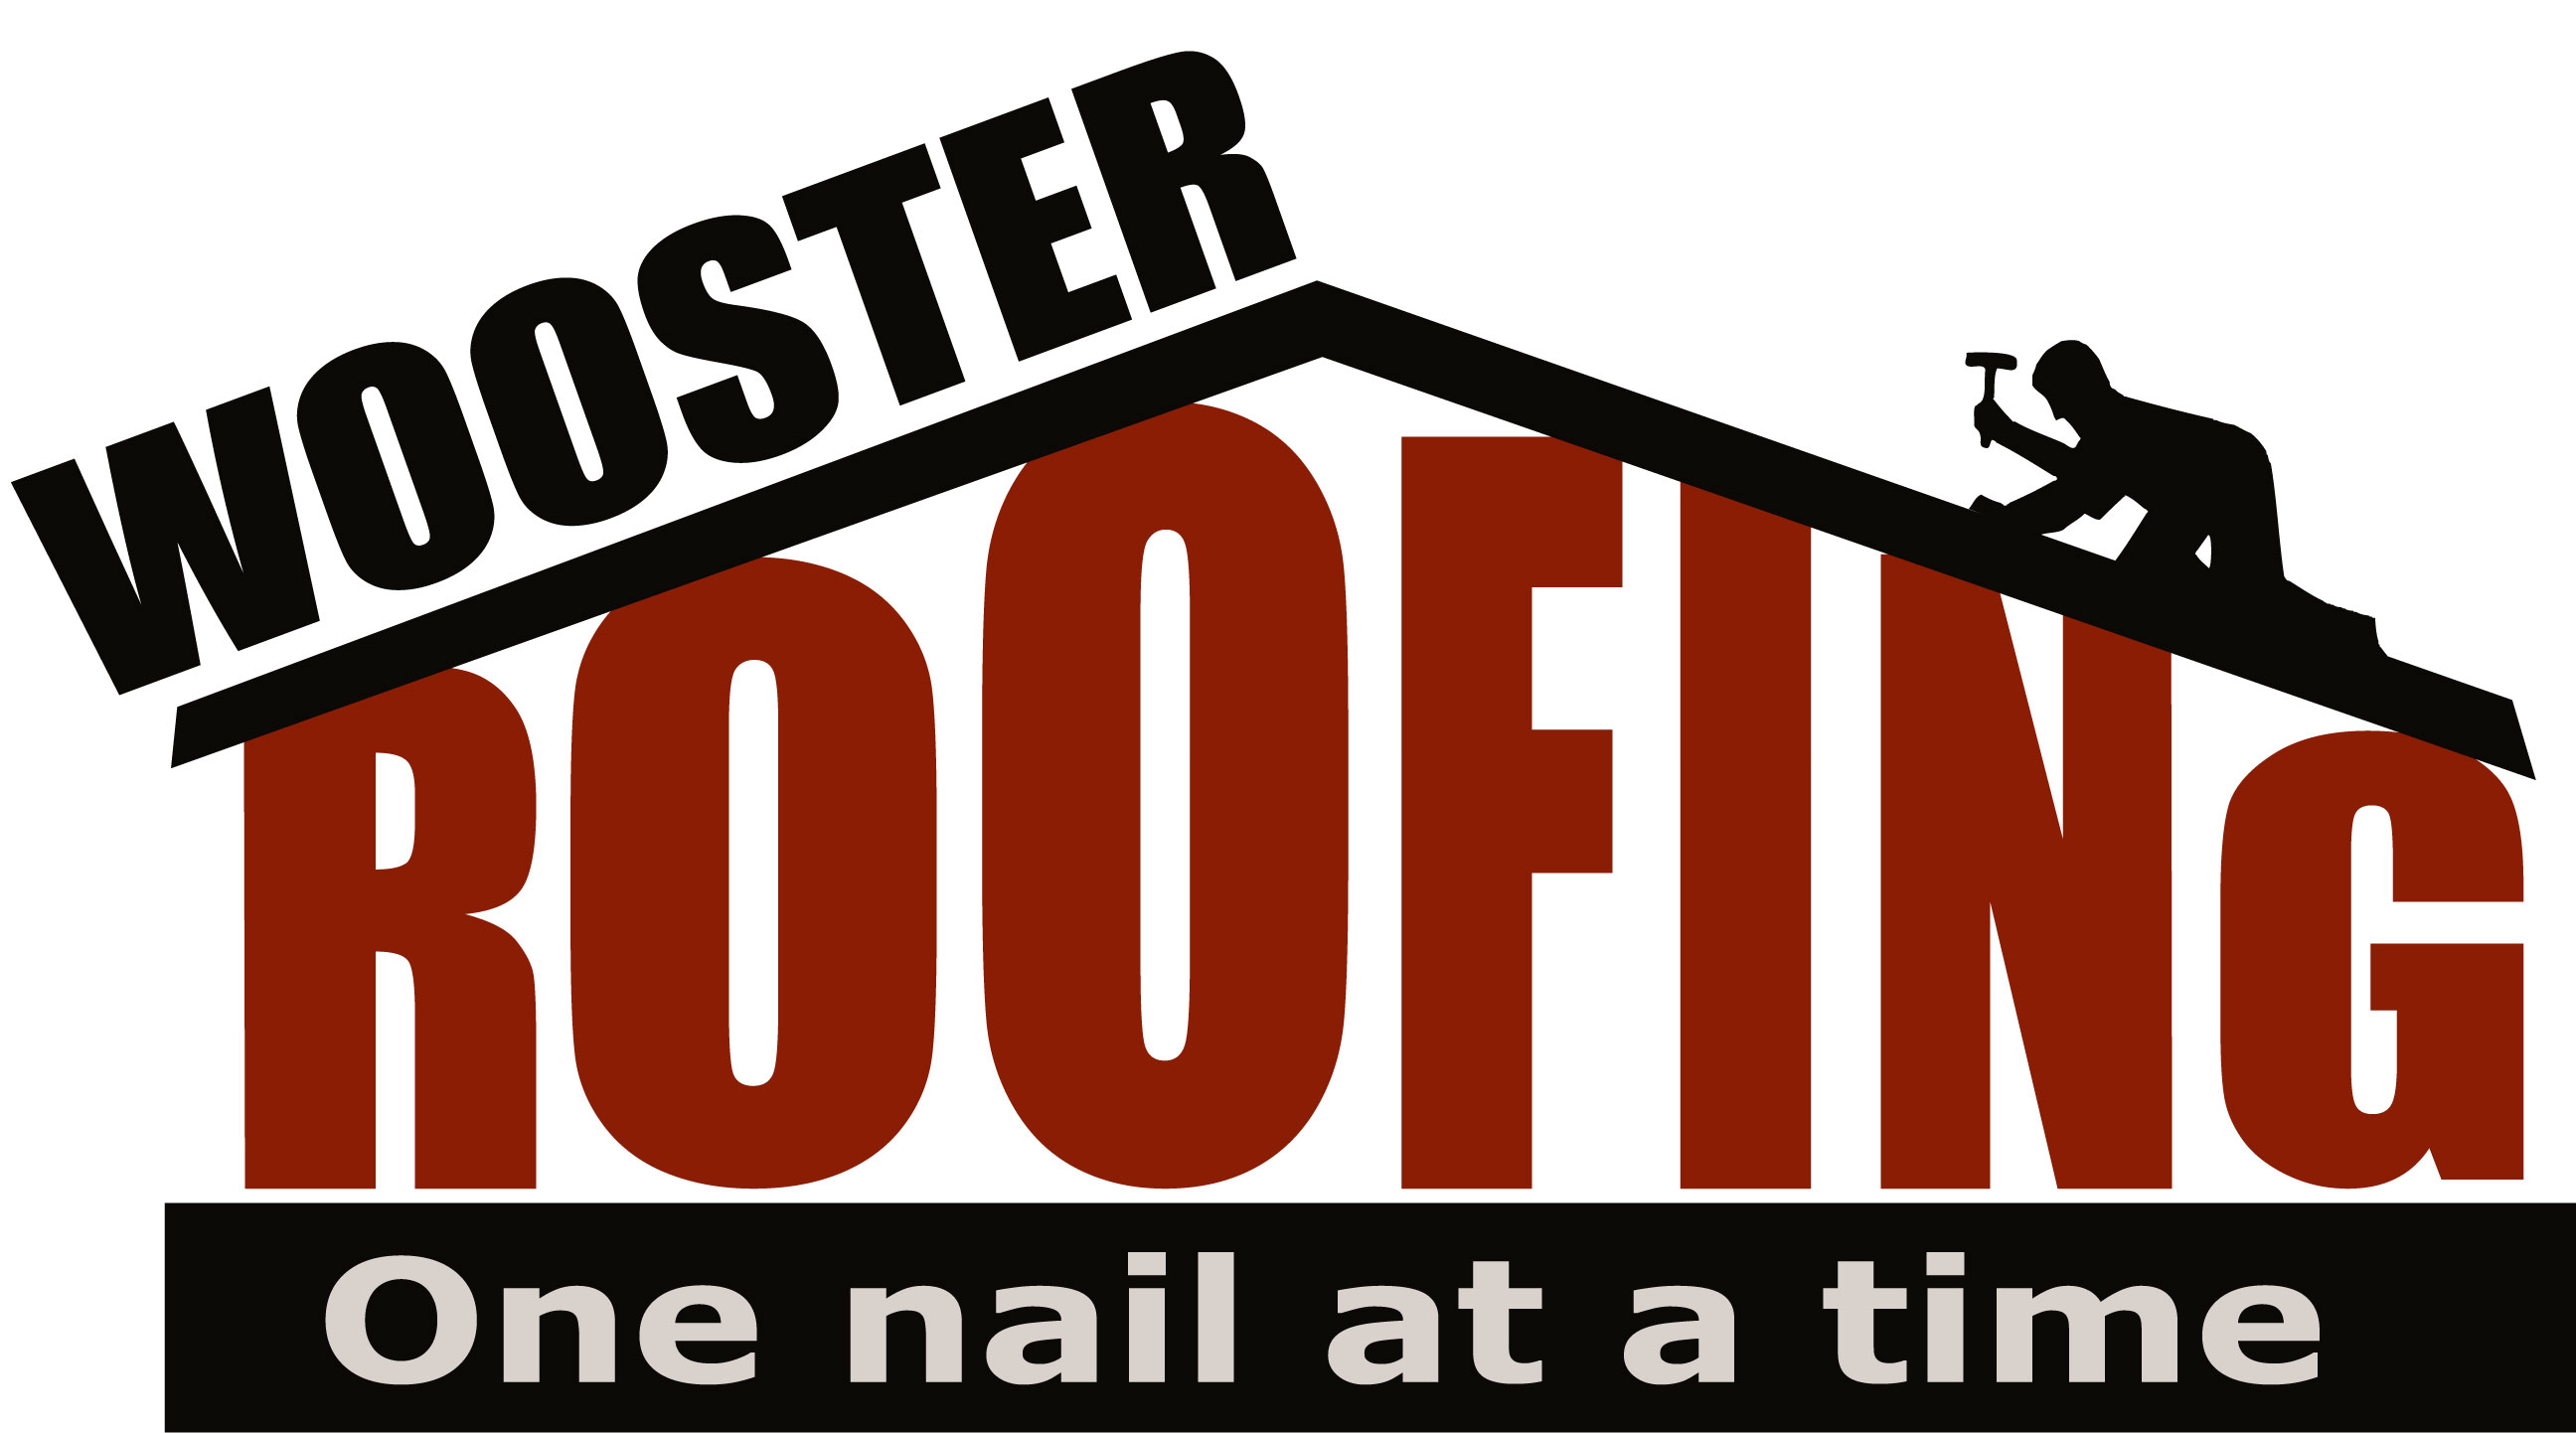 Wooster Roofing Coupons Near Me In Tewksbury Ma 01876